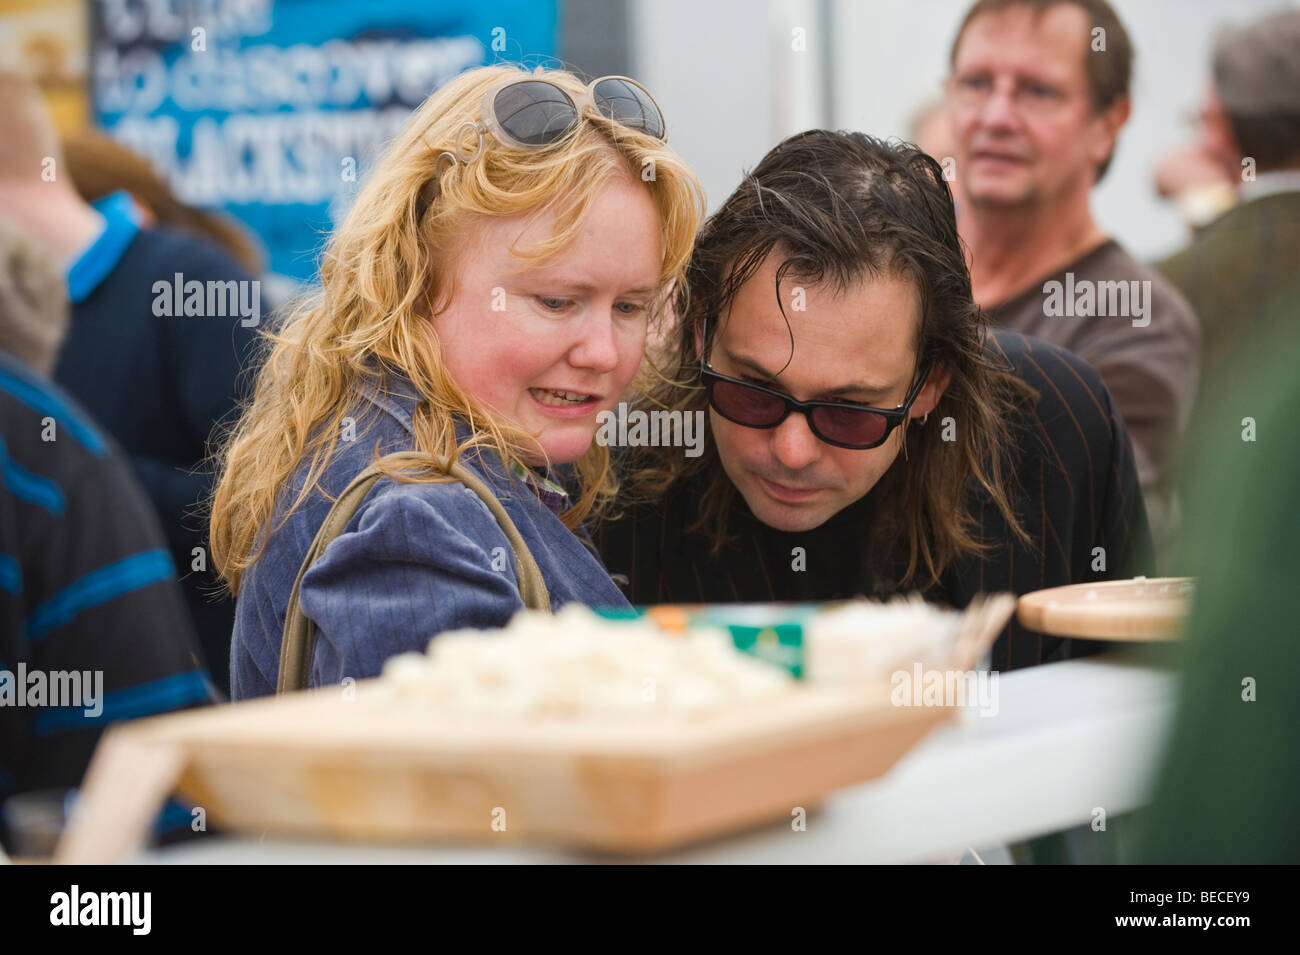 Selecting cheese at The Great British Cheese Festival Cardiff South Wales UK - Stock Image